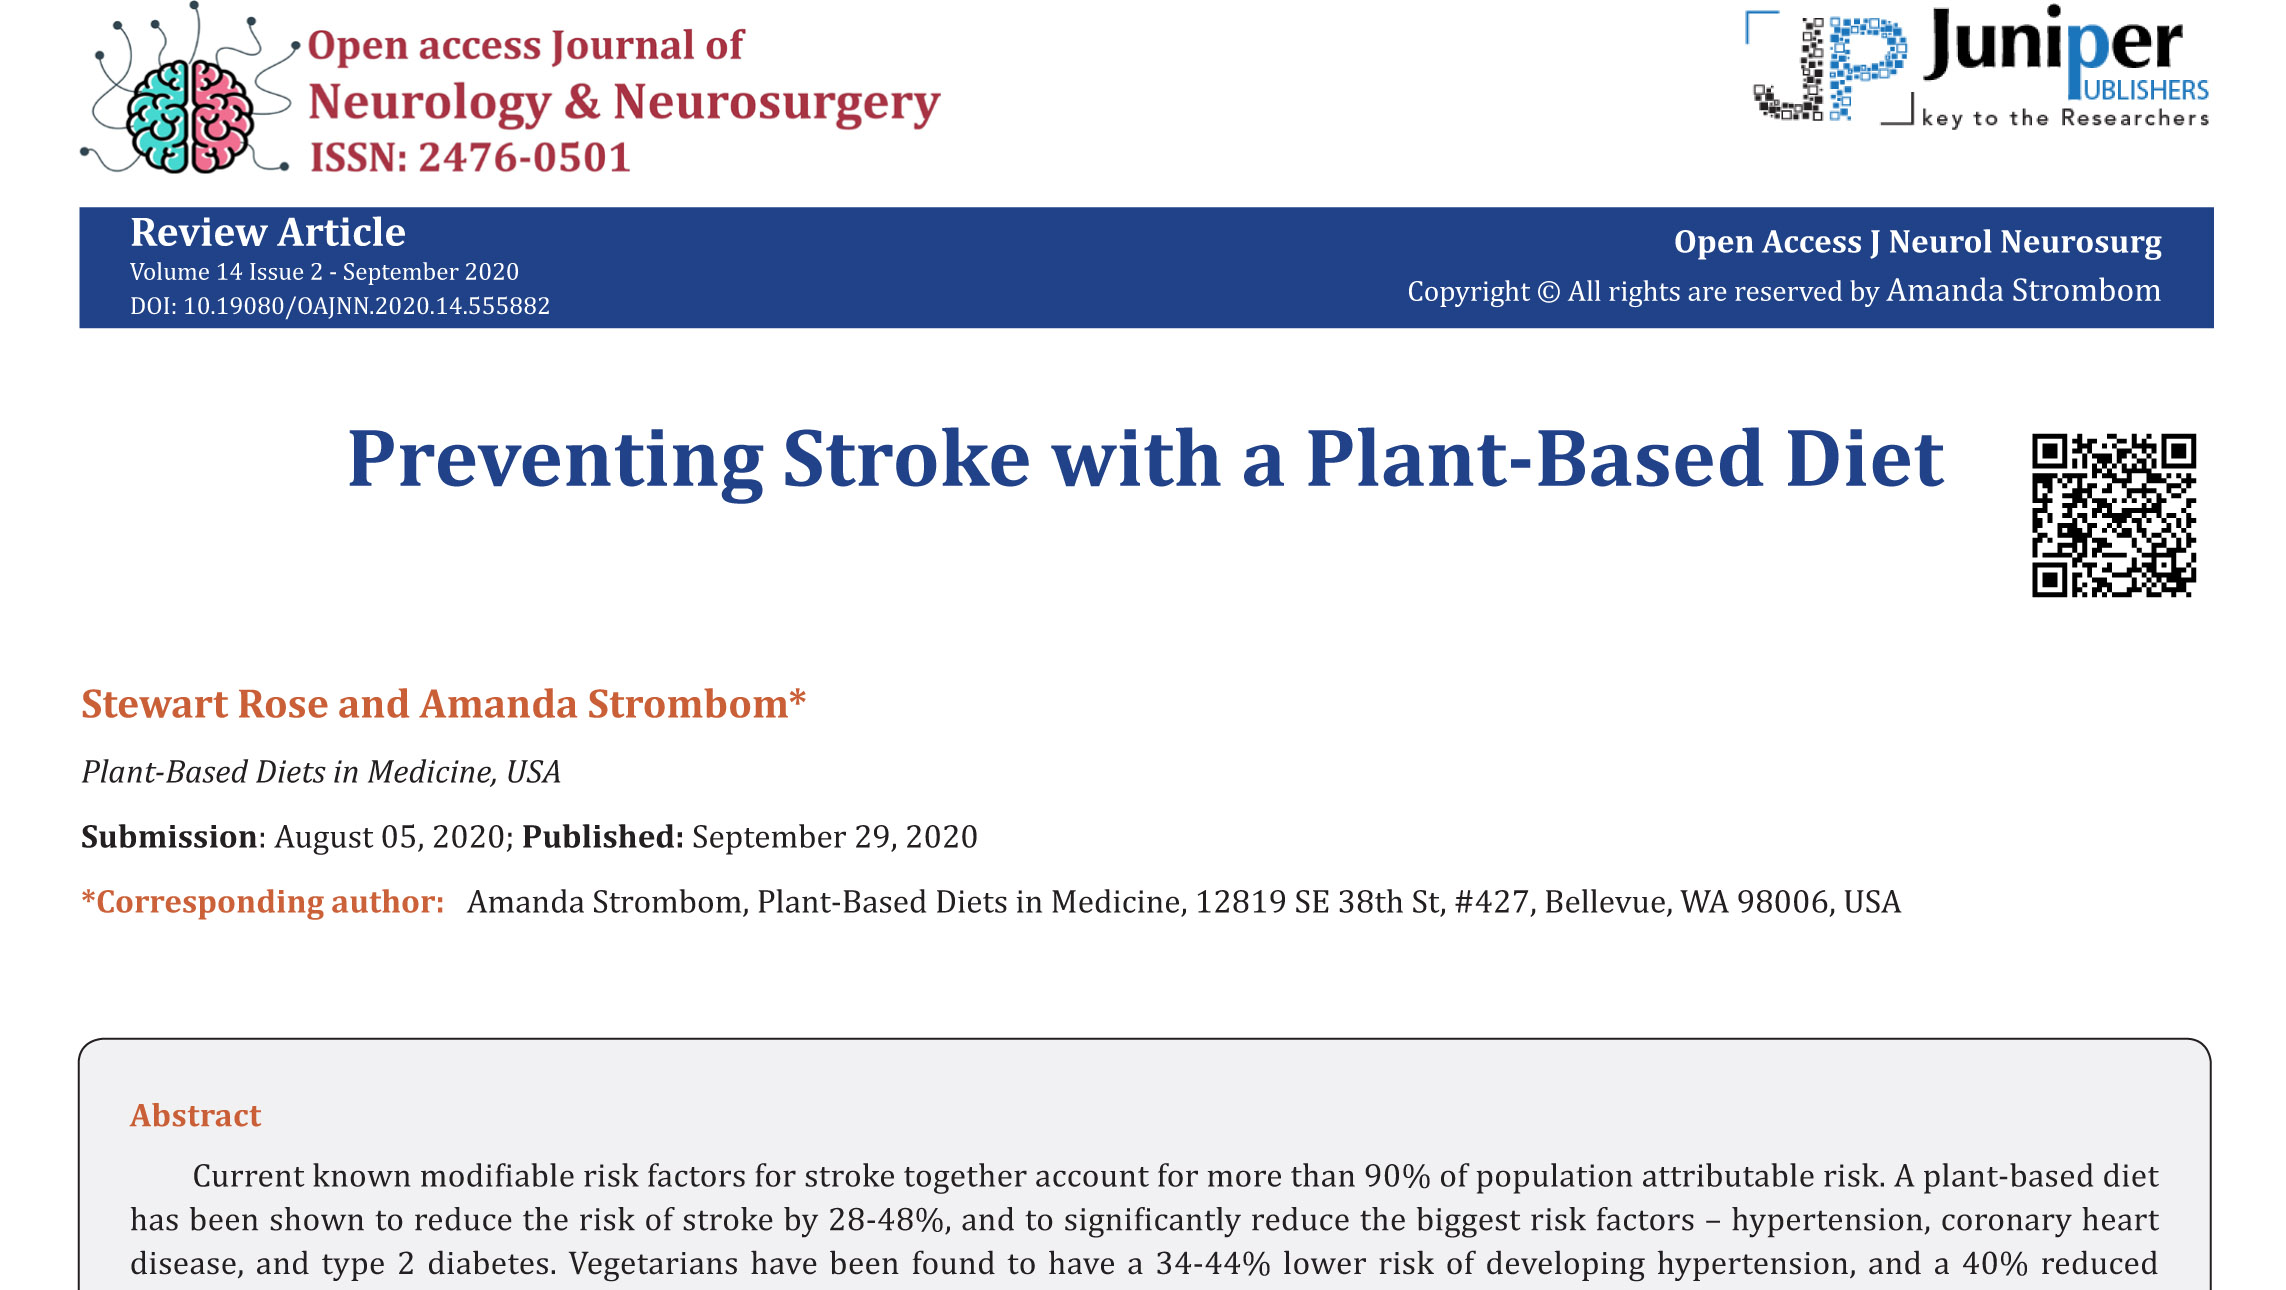 Top portion of published article on preventing stroke with a plant-based diet